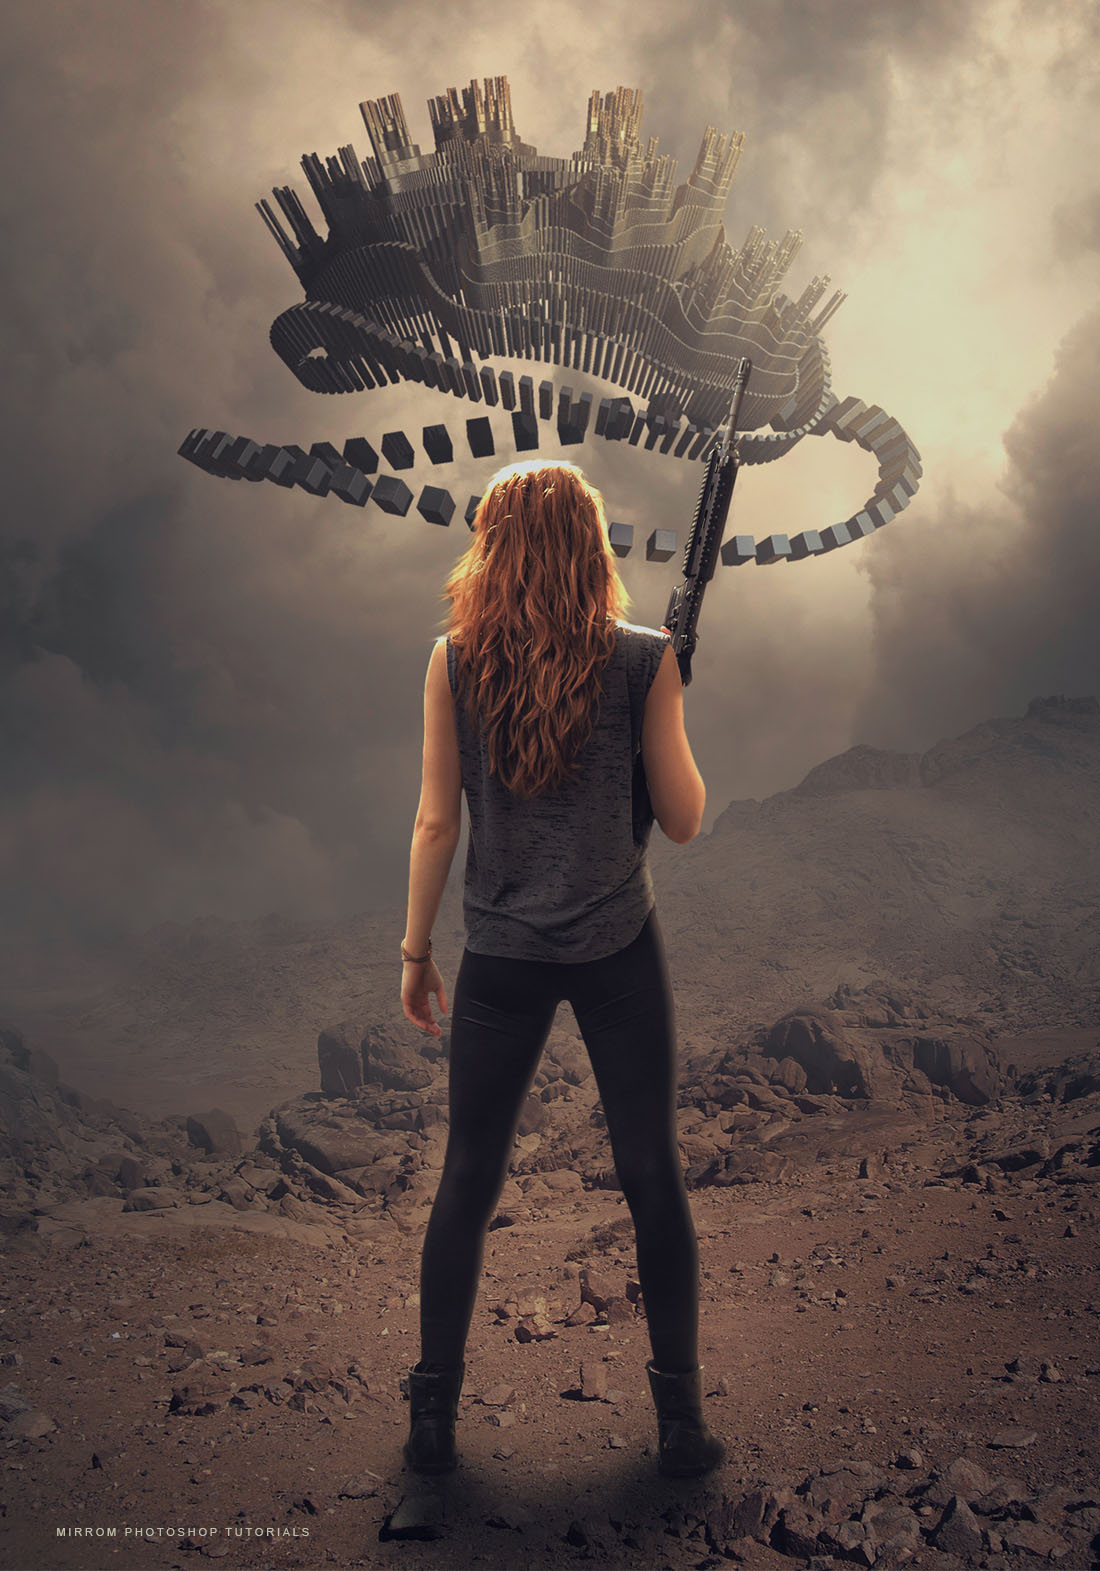 Create a Sci-Fi Photo Manipulation Effects in Photoshop